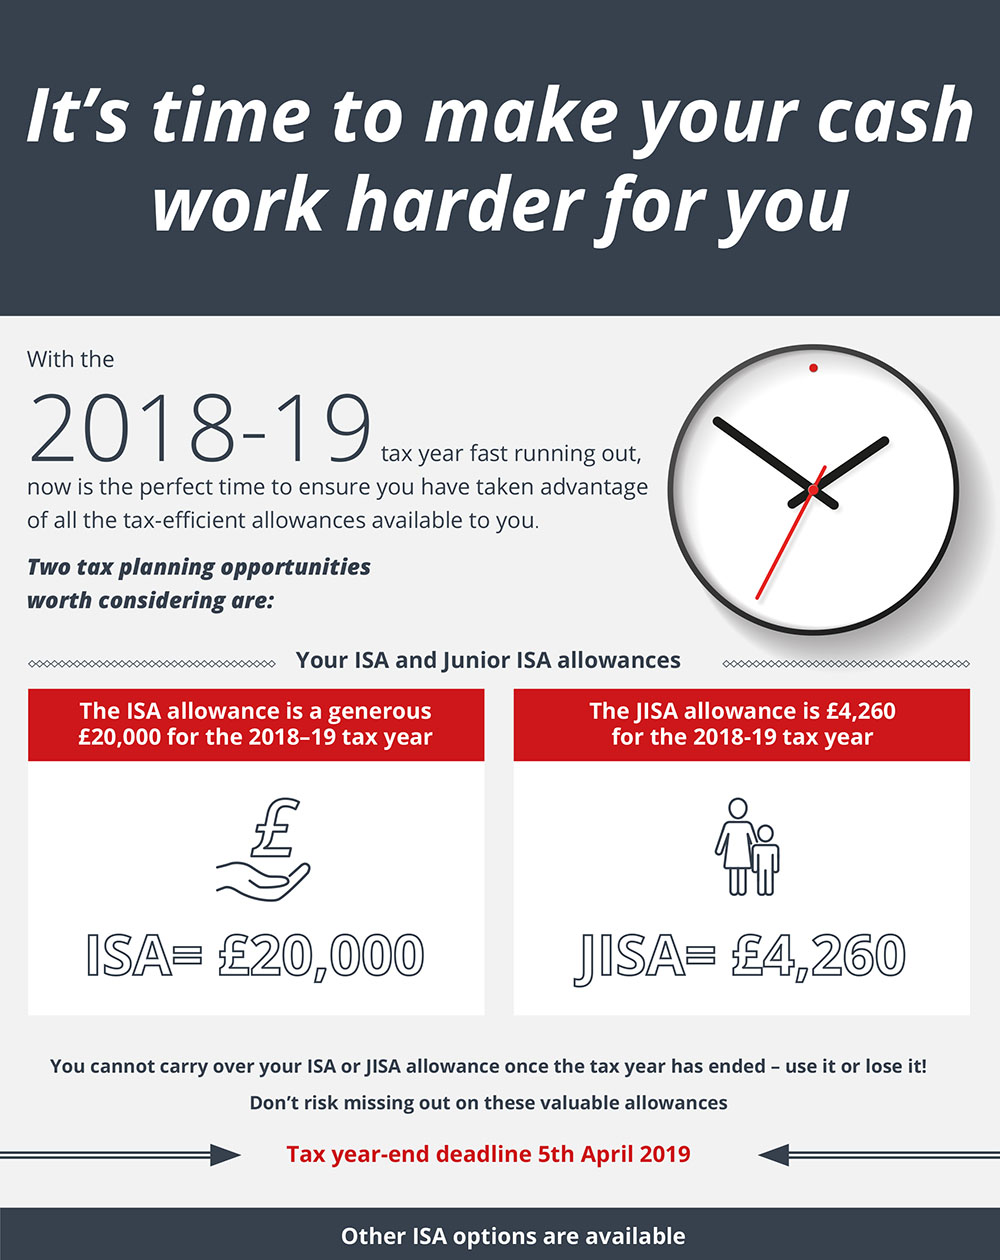 It's time to make your cash work harder for you - With the 2018-19 tax year fast running out, now is th perfect time to ensure you have taken advantage of all the tax-efficient allowances available to you. Two tax planning opportunities worth considering are: Your ISA and Junior ISA allowances. The ISA allowance is a generous £20,000 for the 2018-19 tax year. The JISA allowance is £24,000 for the 2018-19 tax year. You cannot carry over your ISA or JISA allowance once the tax year has ended - use it or lose it! Don't risk missing out on these valuable allowances. Tax year-end deadline 5th April 2019. Other ISA options are available.